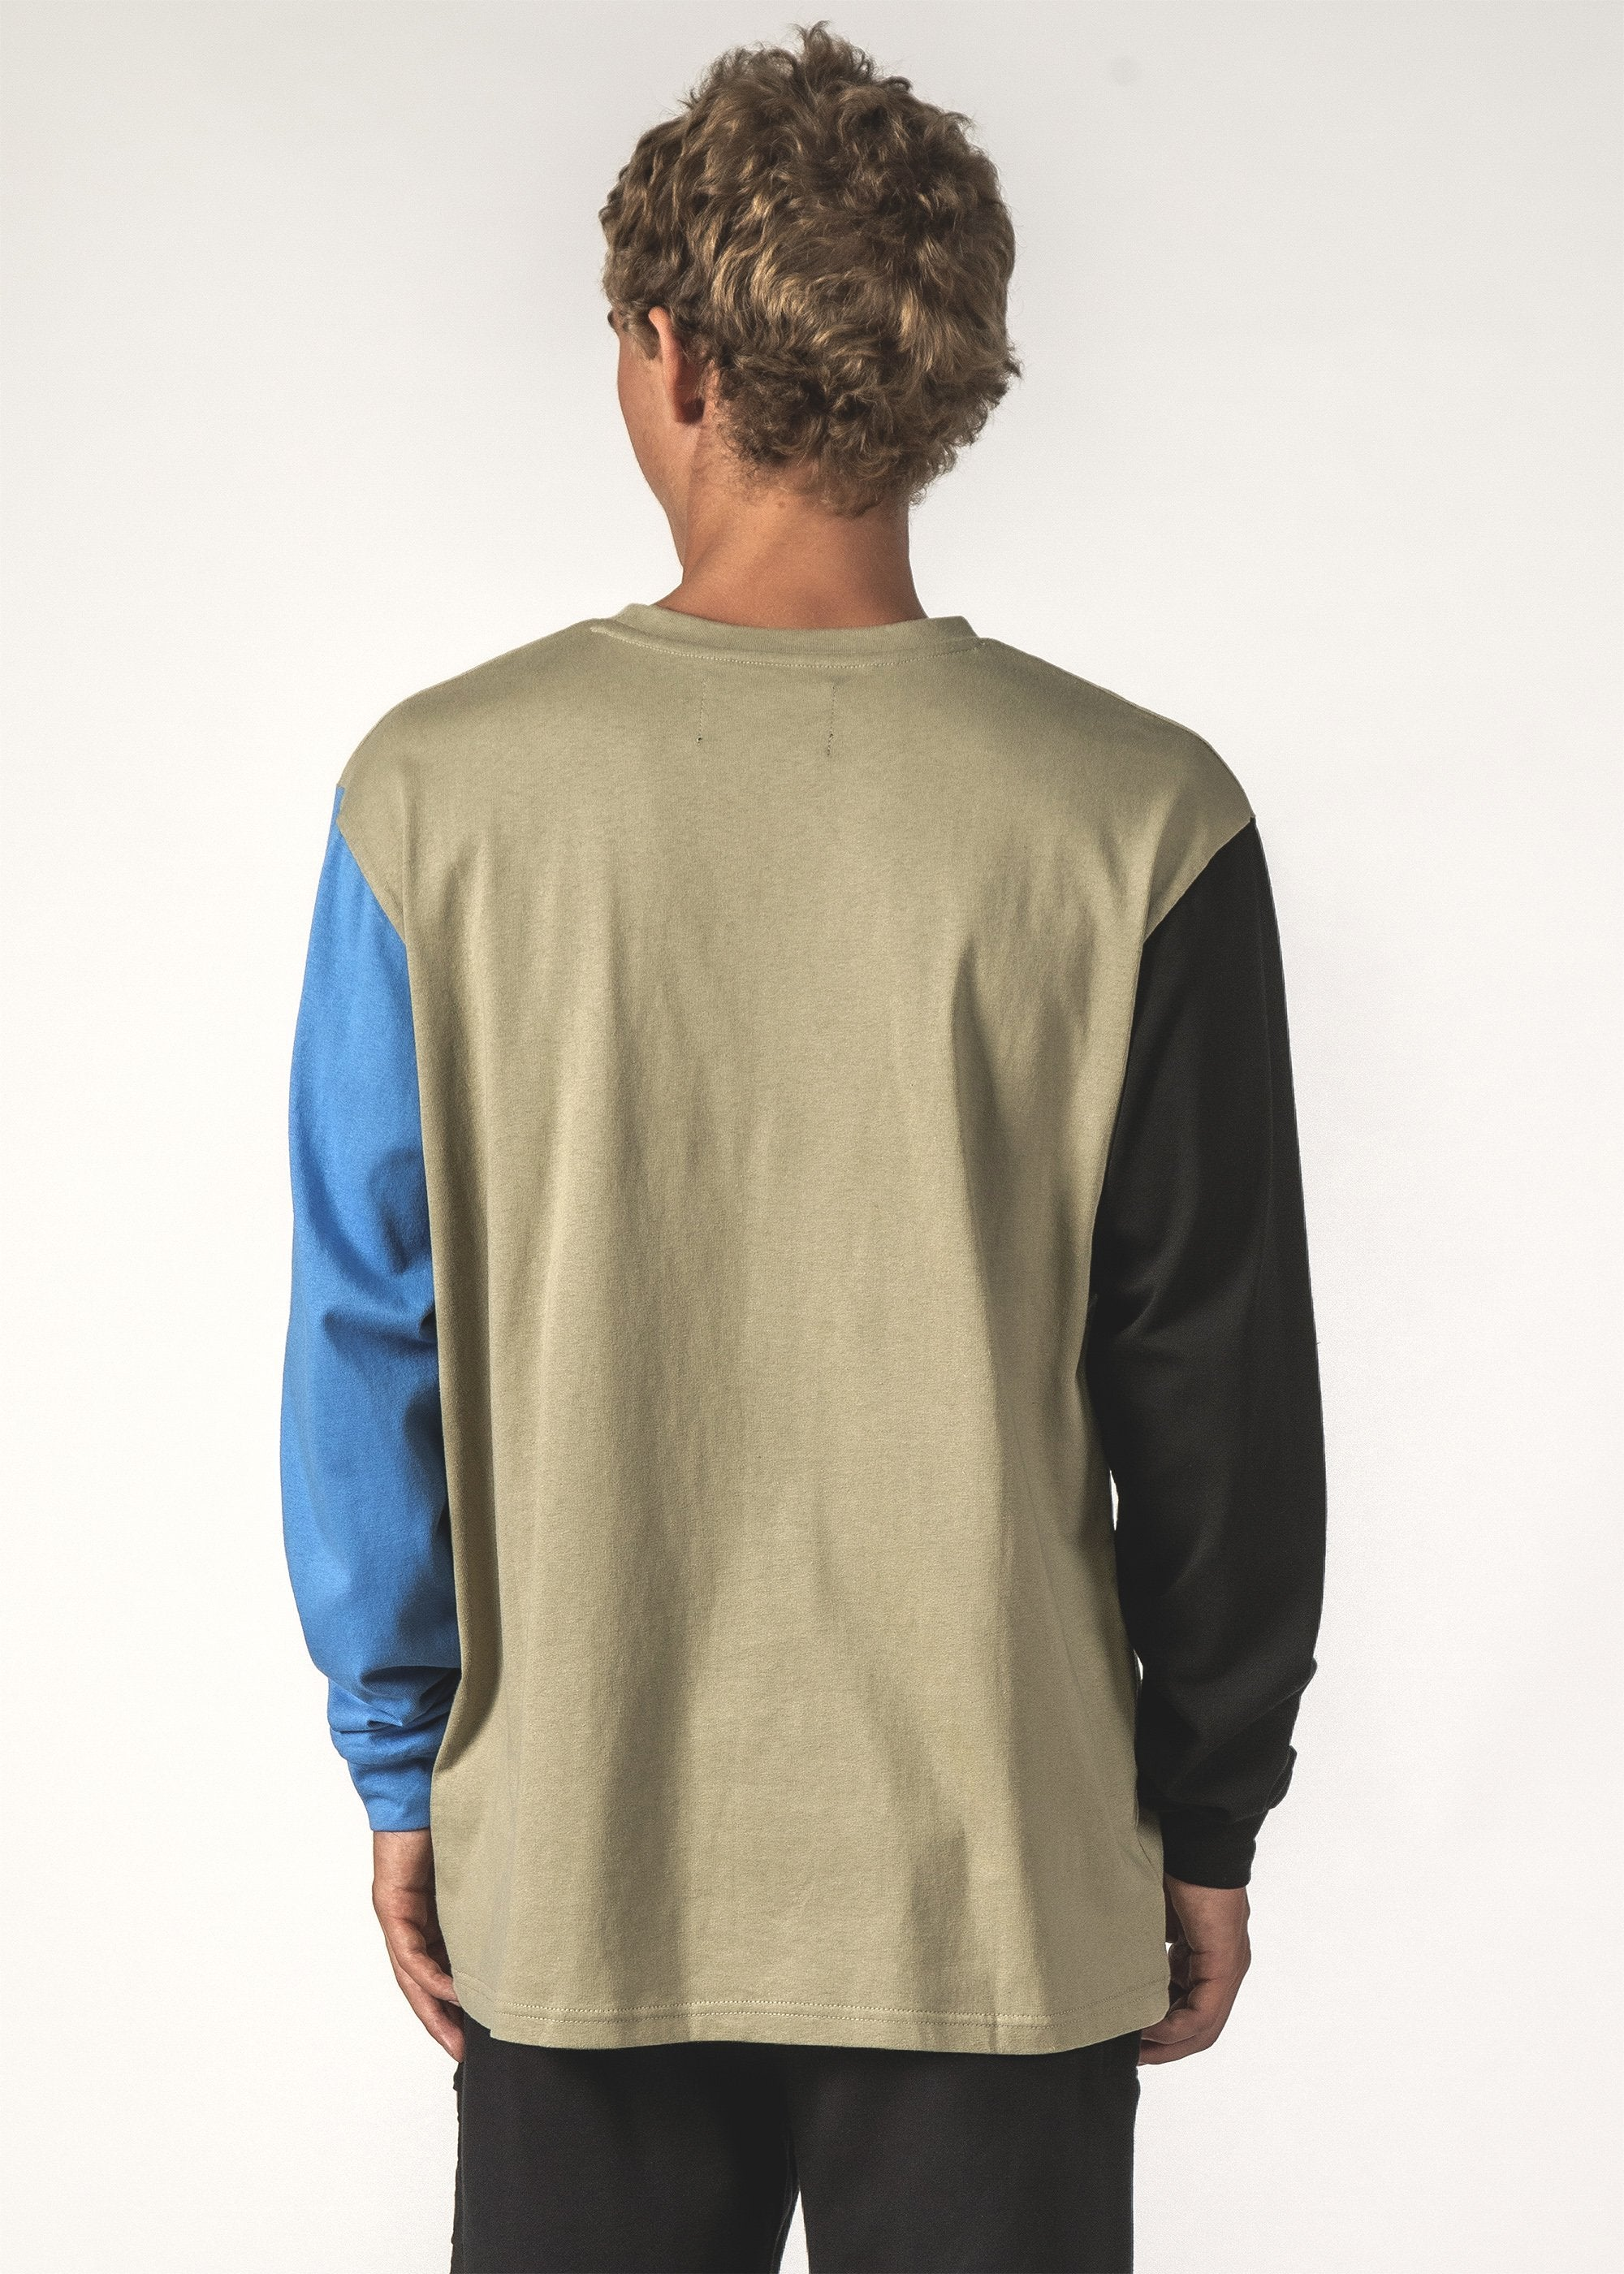 LS TEE - Blue/Black/Oat